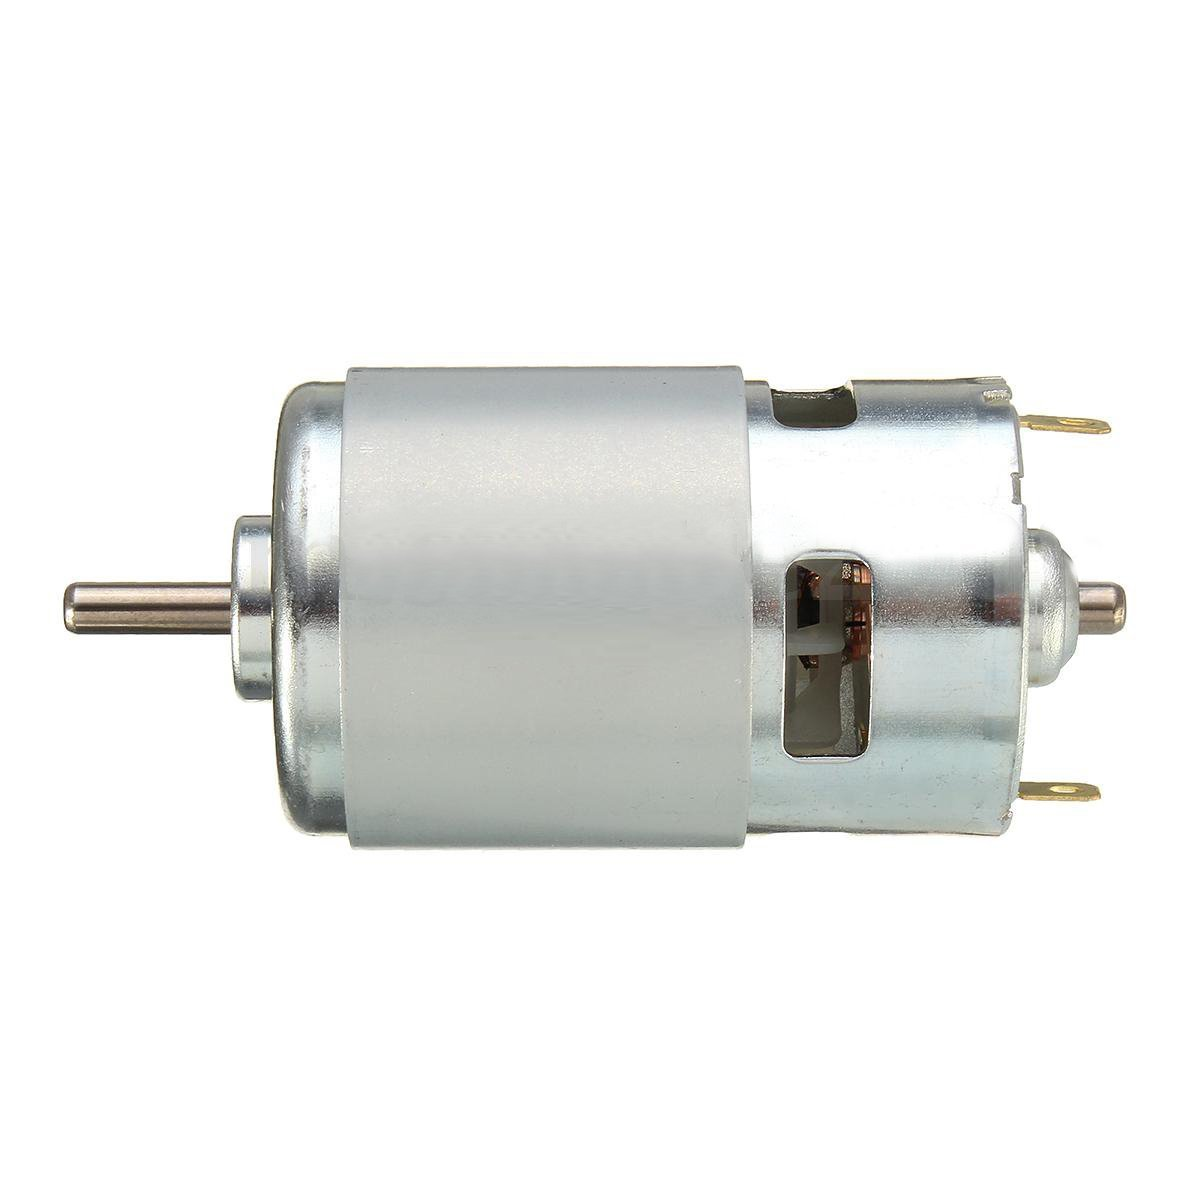 Qianson DC 12V-36V 24V 3500-9000RPM 775 Motor Ball Bearing Large Torque High Power Low Noise DC Motor For Electrical Tools